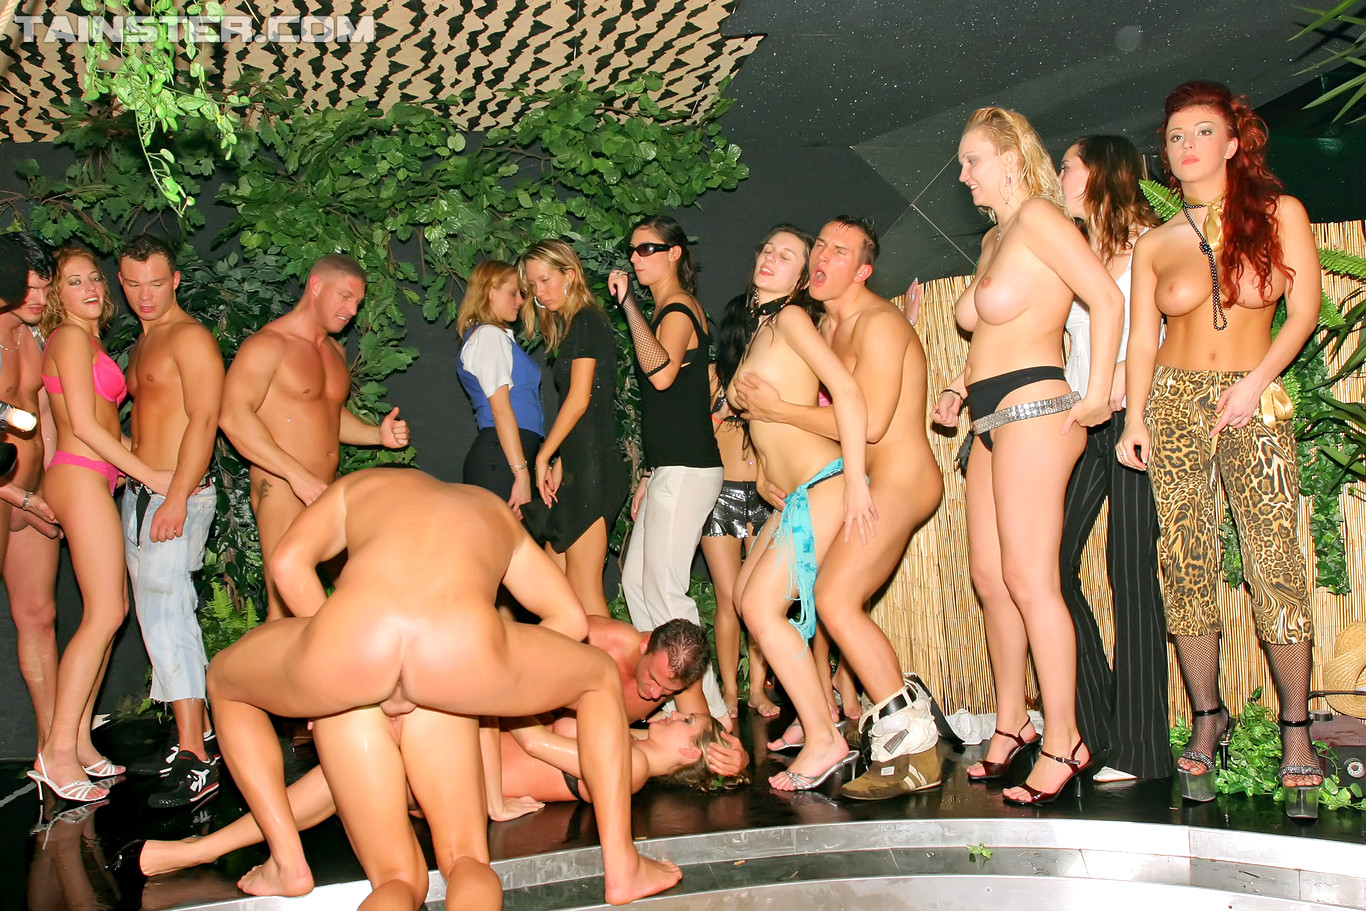 strippers-orgy-video